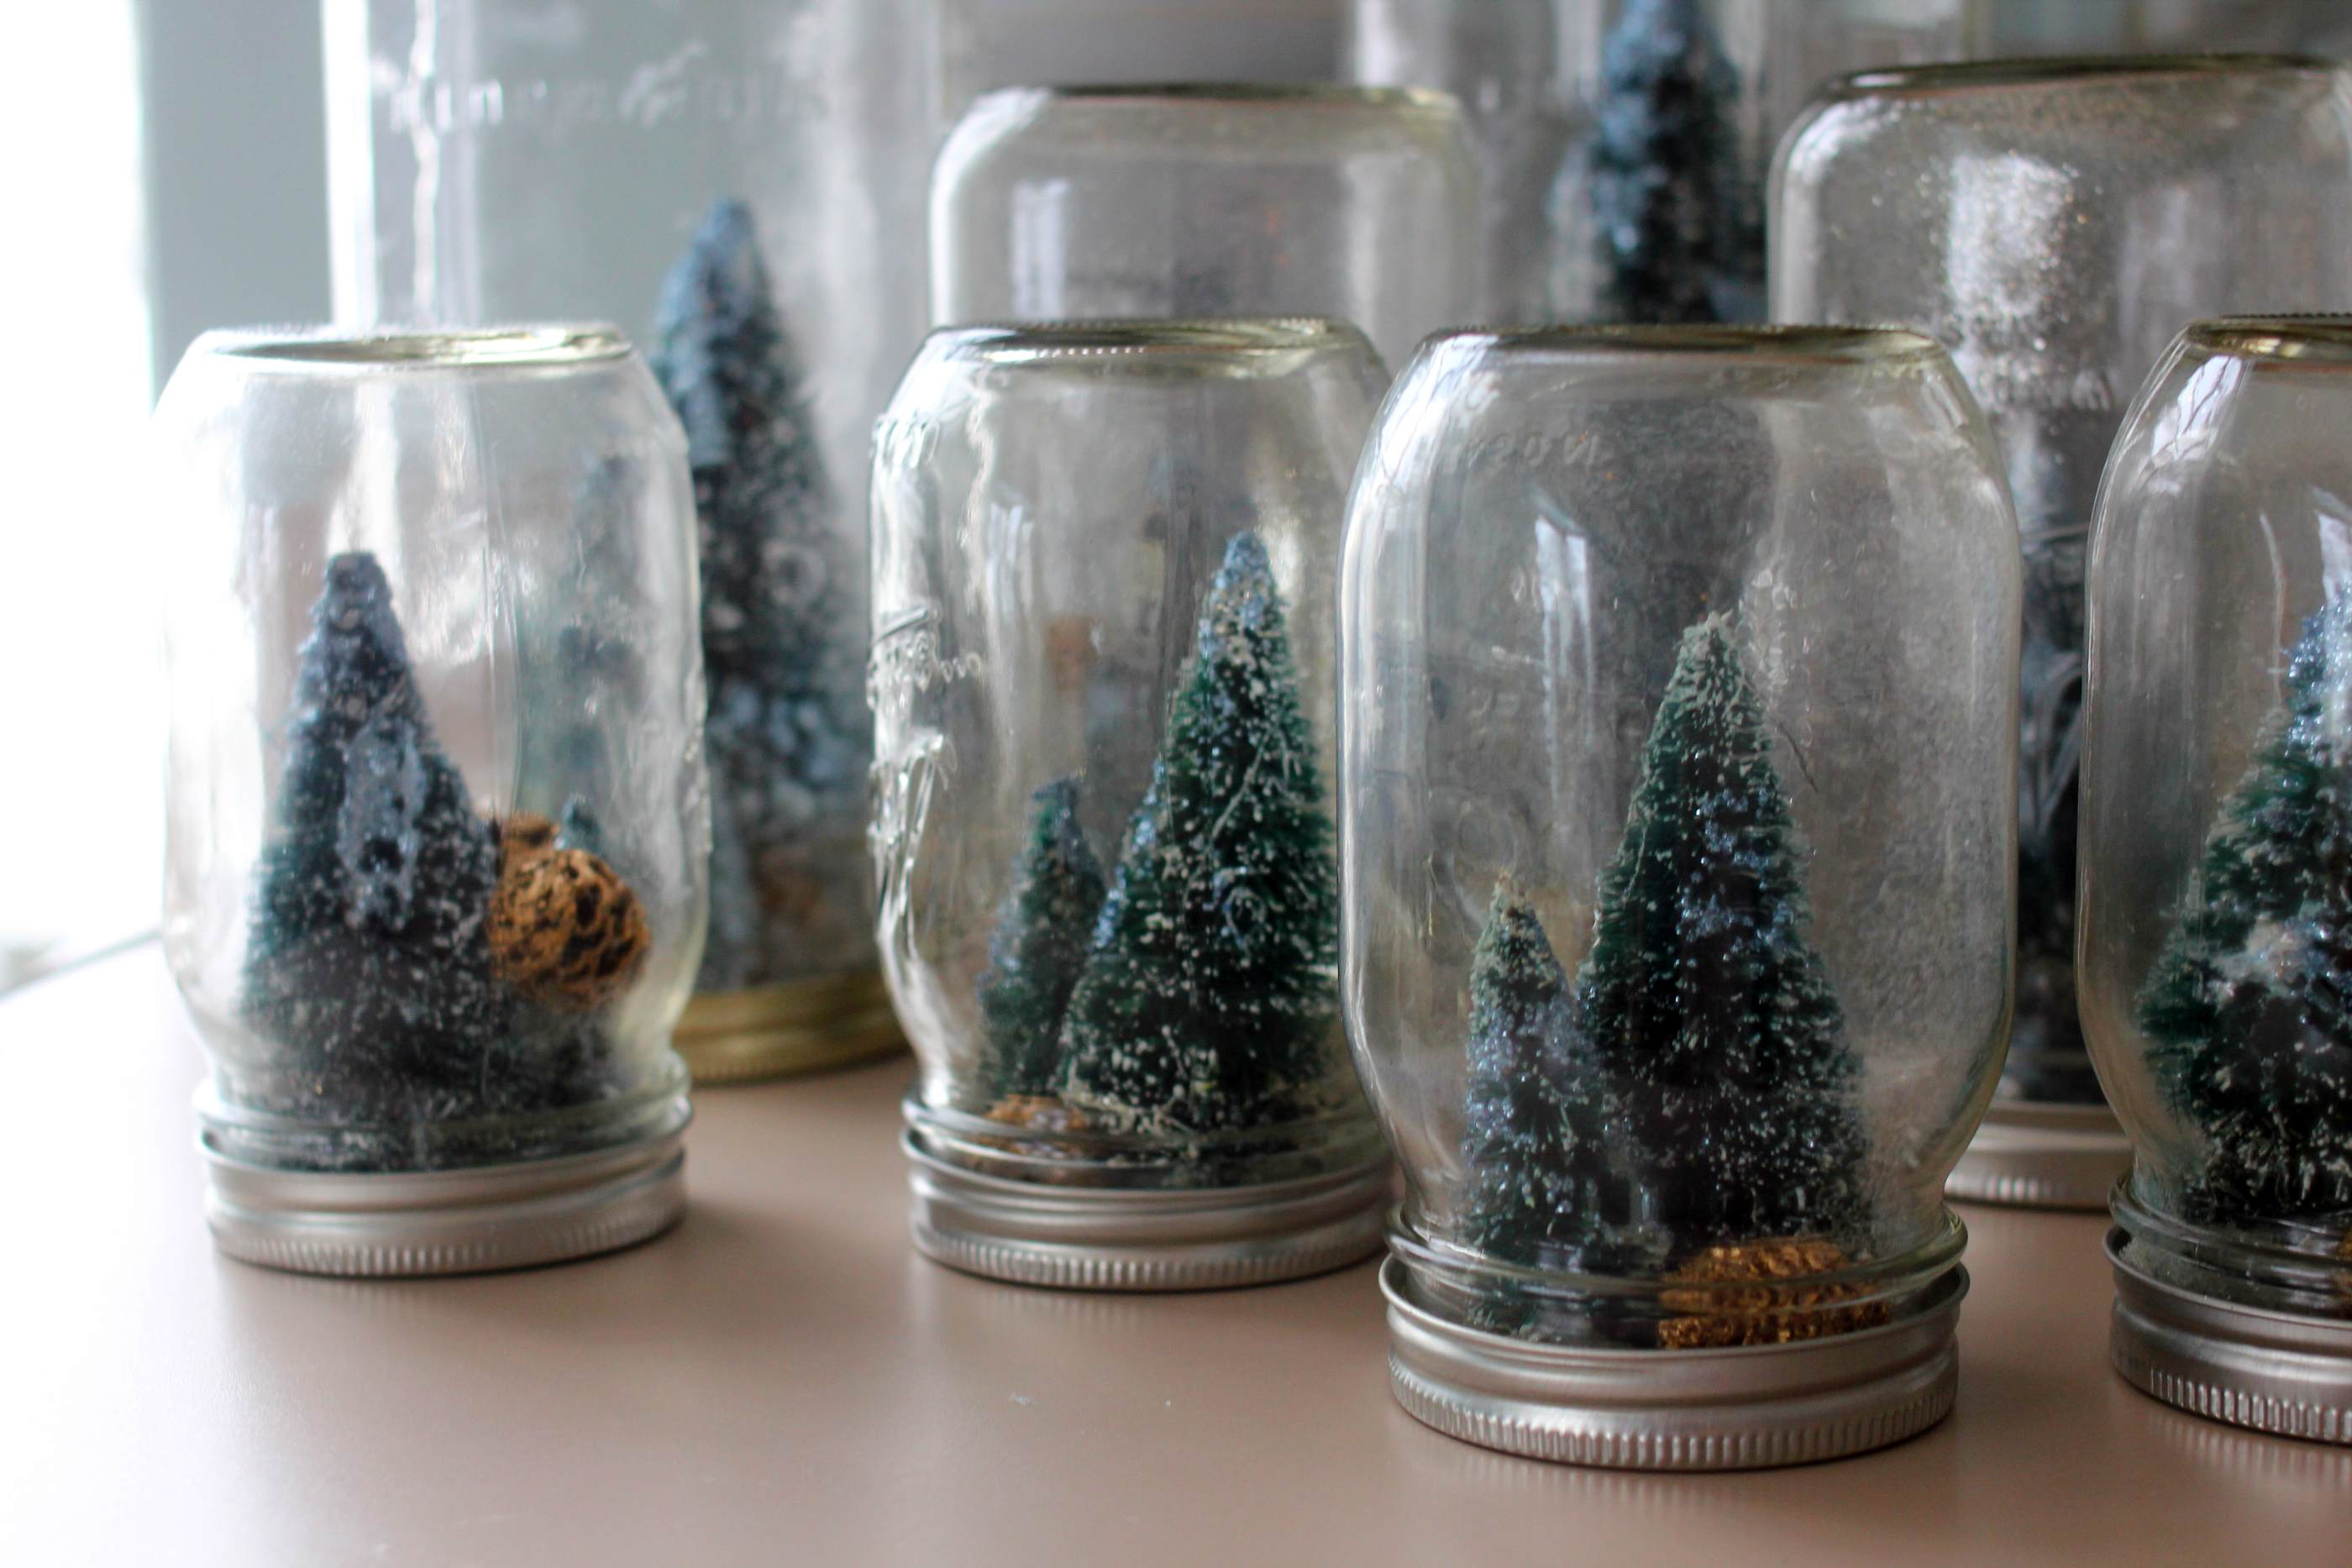 Homemade Holiday Mason Jar Snowglobes With Tiny Sparkly Christmas Trees The Amused Bouche